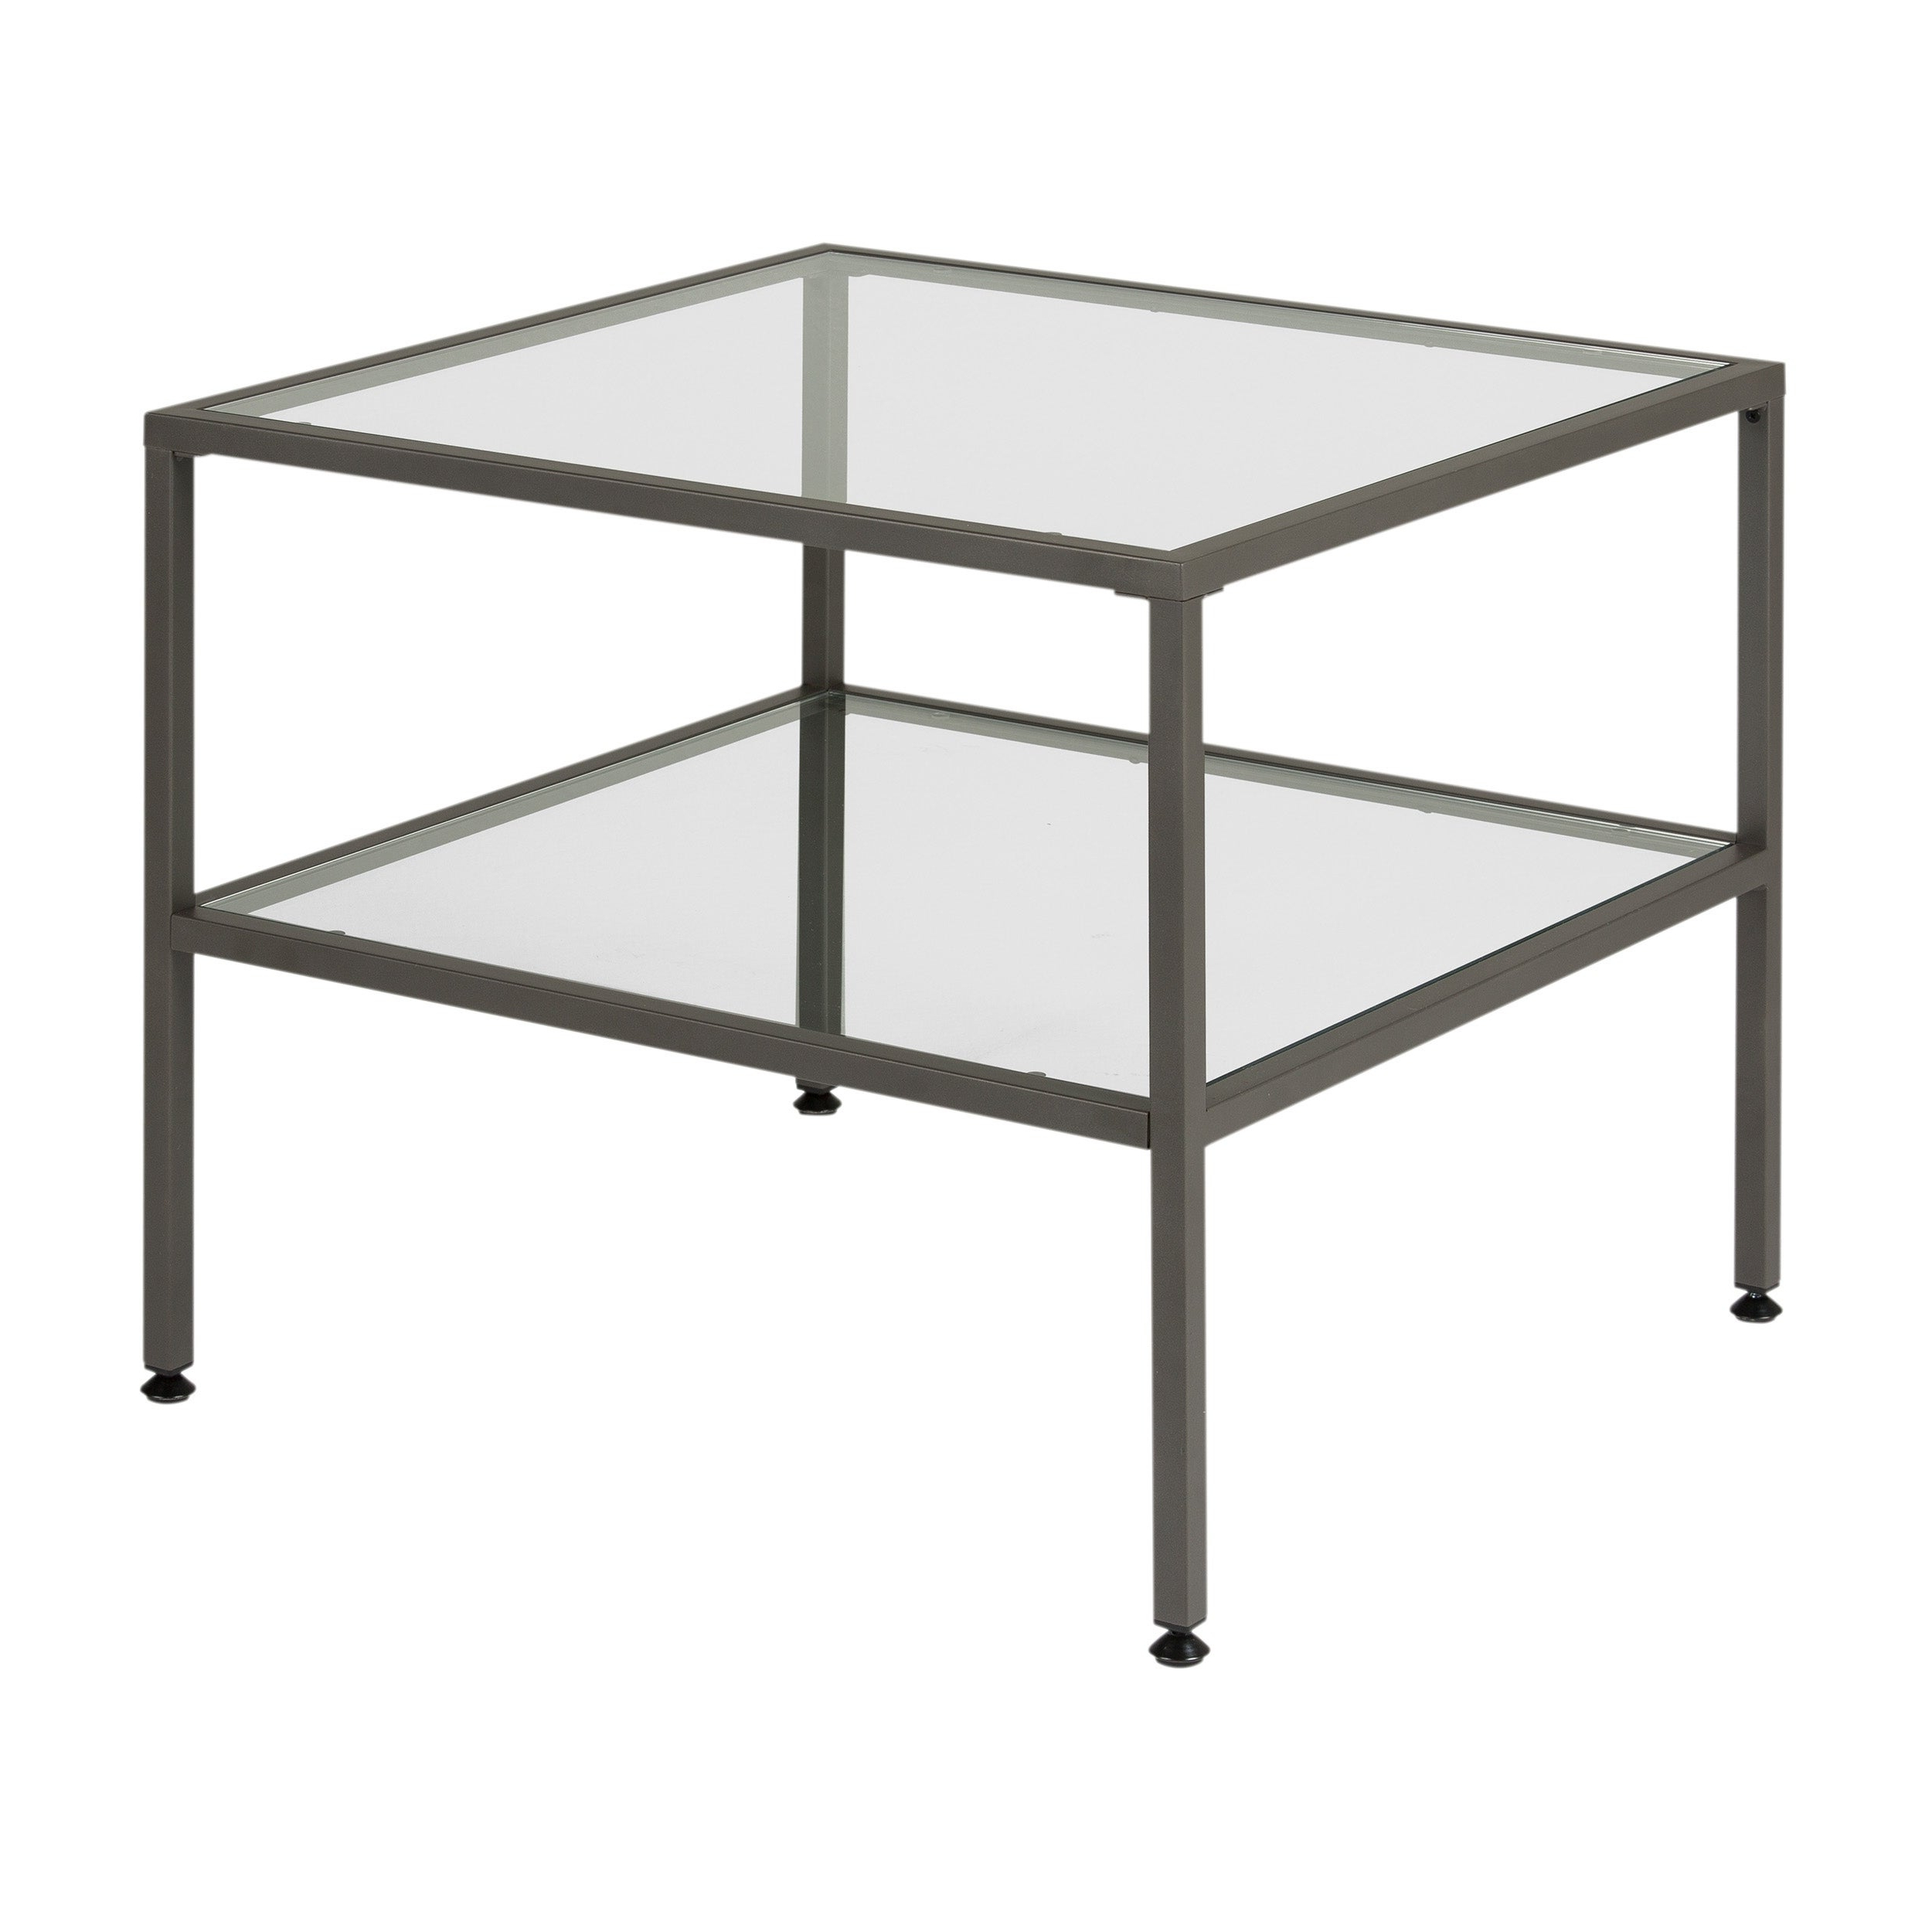 Carbon Loft Heimlich One Shelf End Table Throughout 2020 Carbon Loft Heimlich Pewter Steel/glass Round Coffee Tables (View 5 of 20)